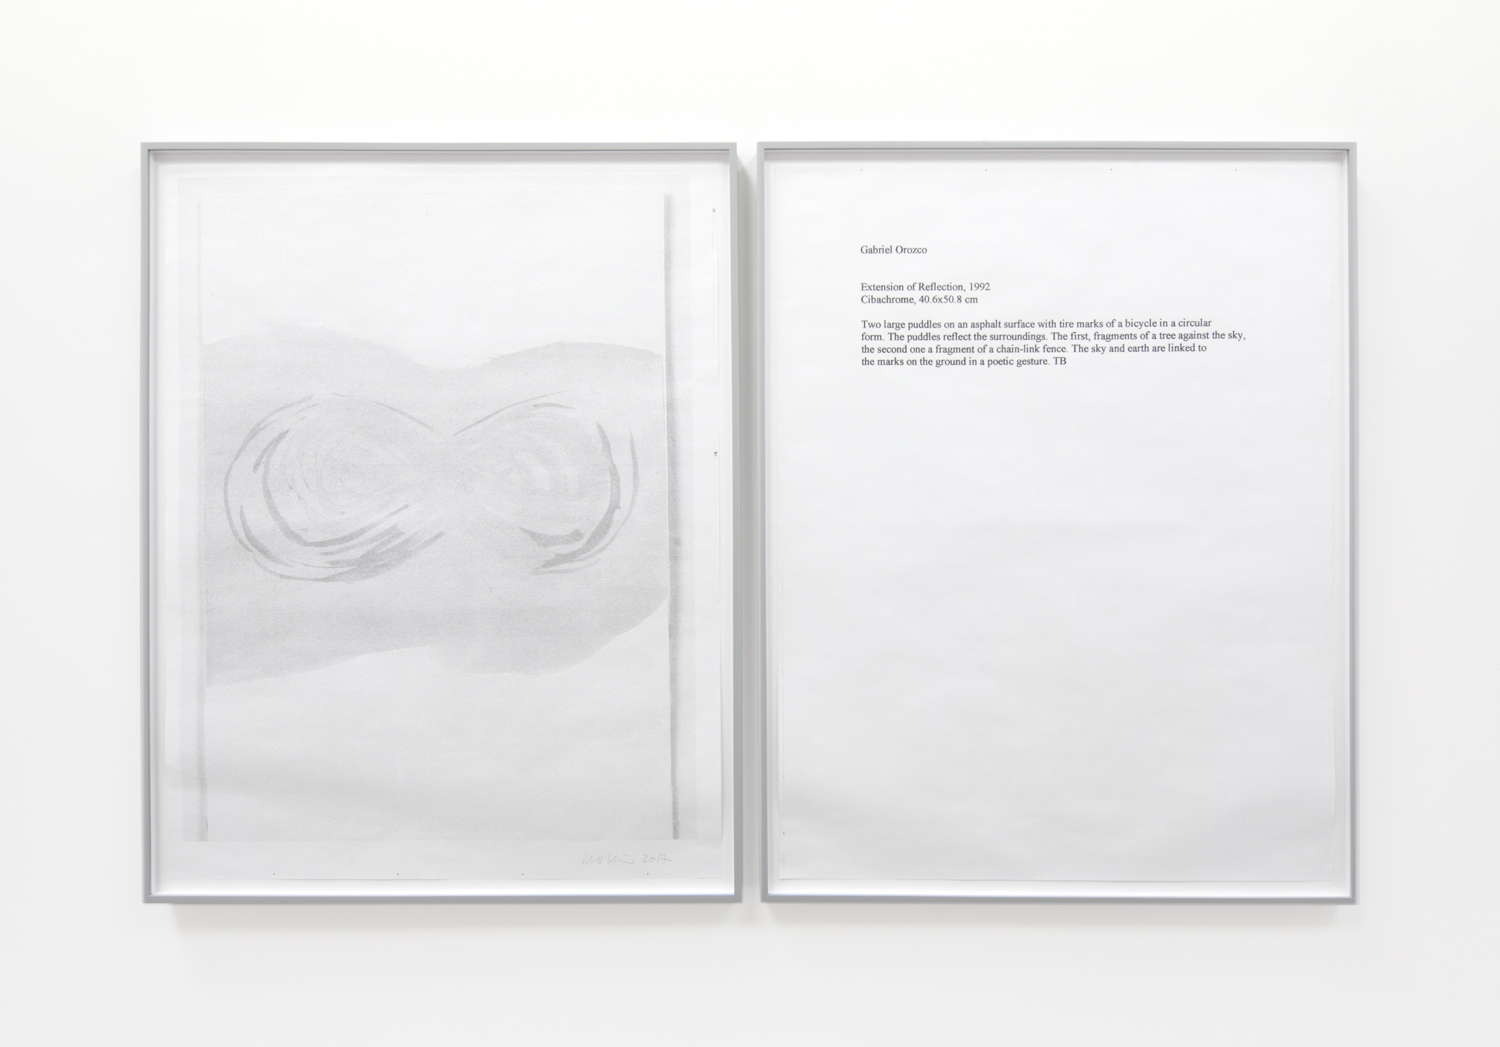 One Work with Footnote (Gabriel Orozco)   2015-2017 diptych; hybrid prints edition 1 of 1 36 x 29 inches each